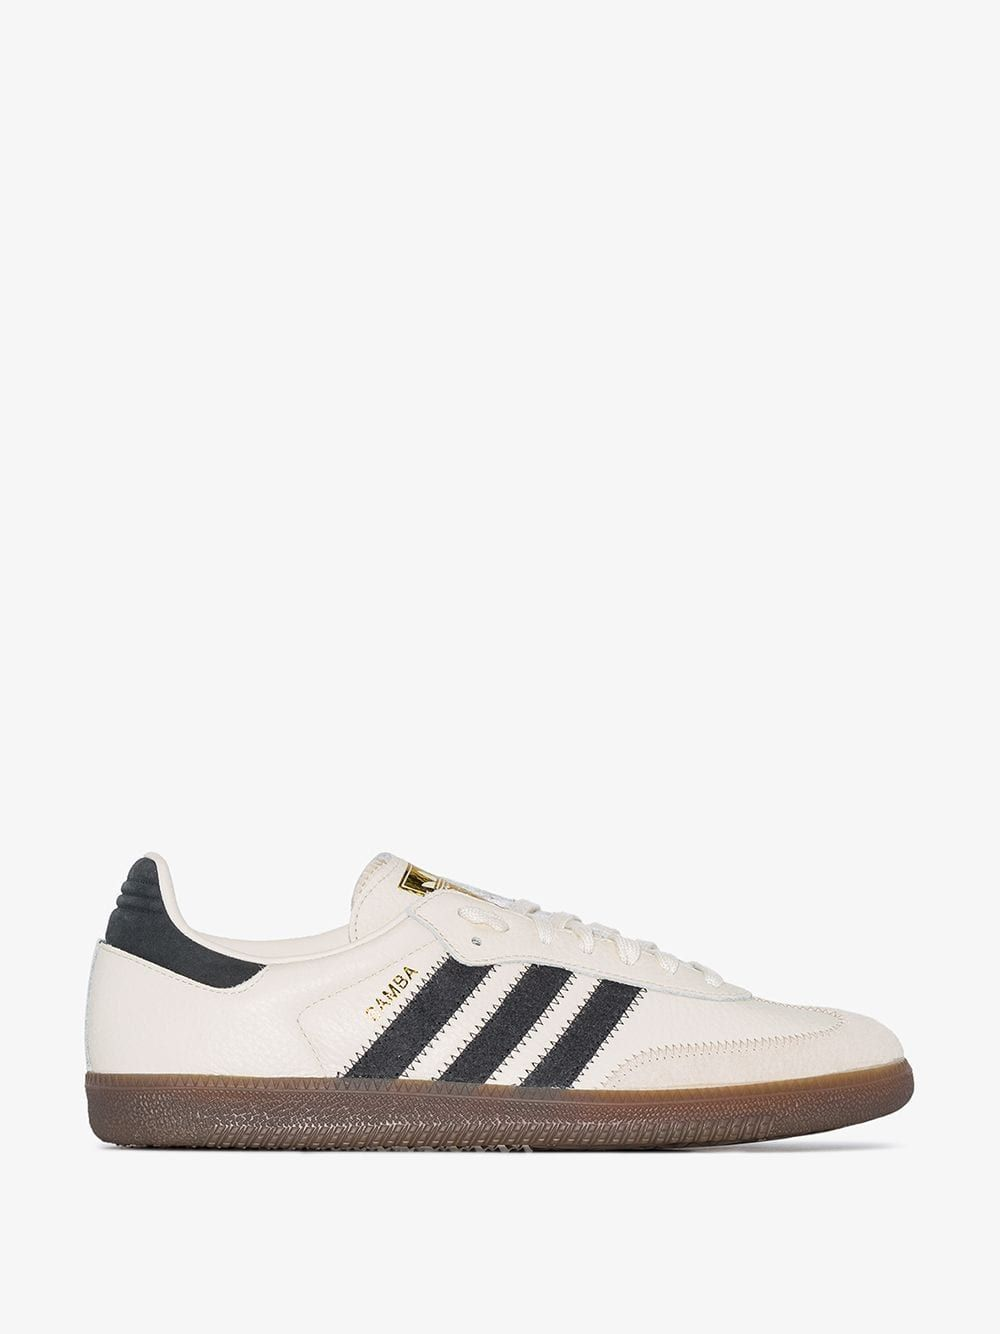 Adidas Samba Low-top Sneakers In White